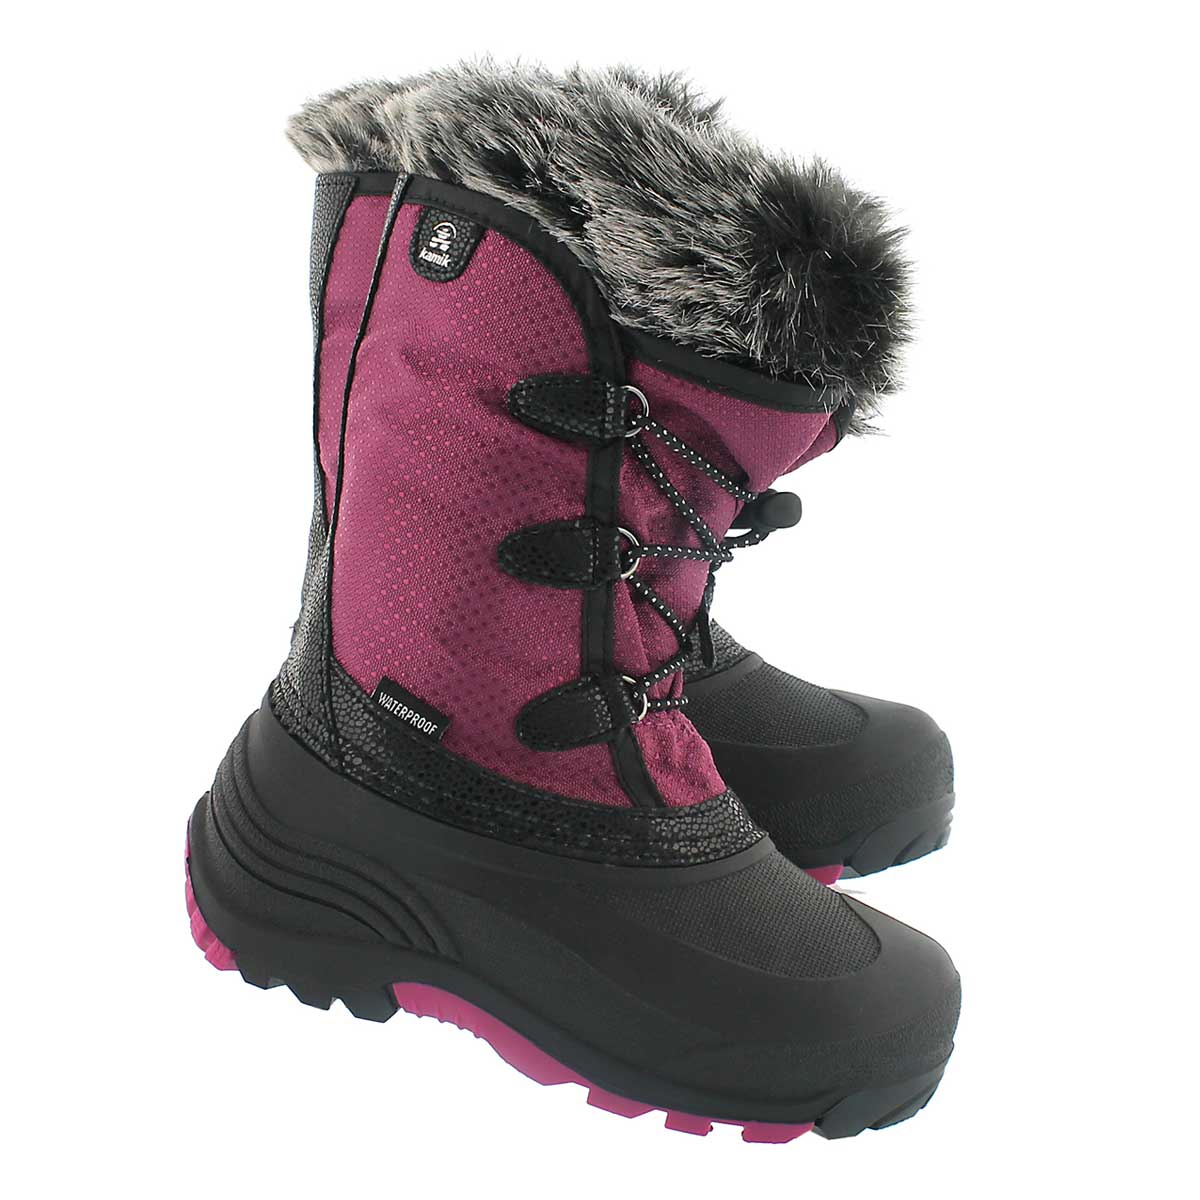 Grls Powdery plum wtpf winter boot